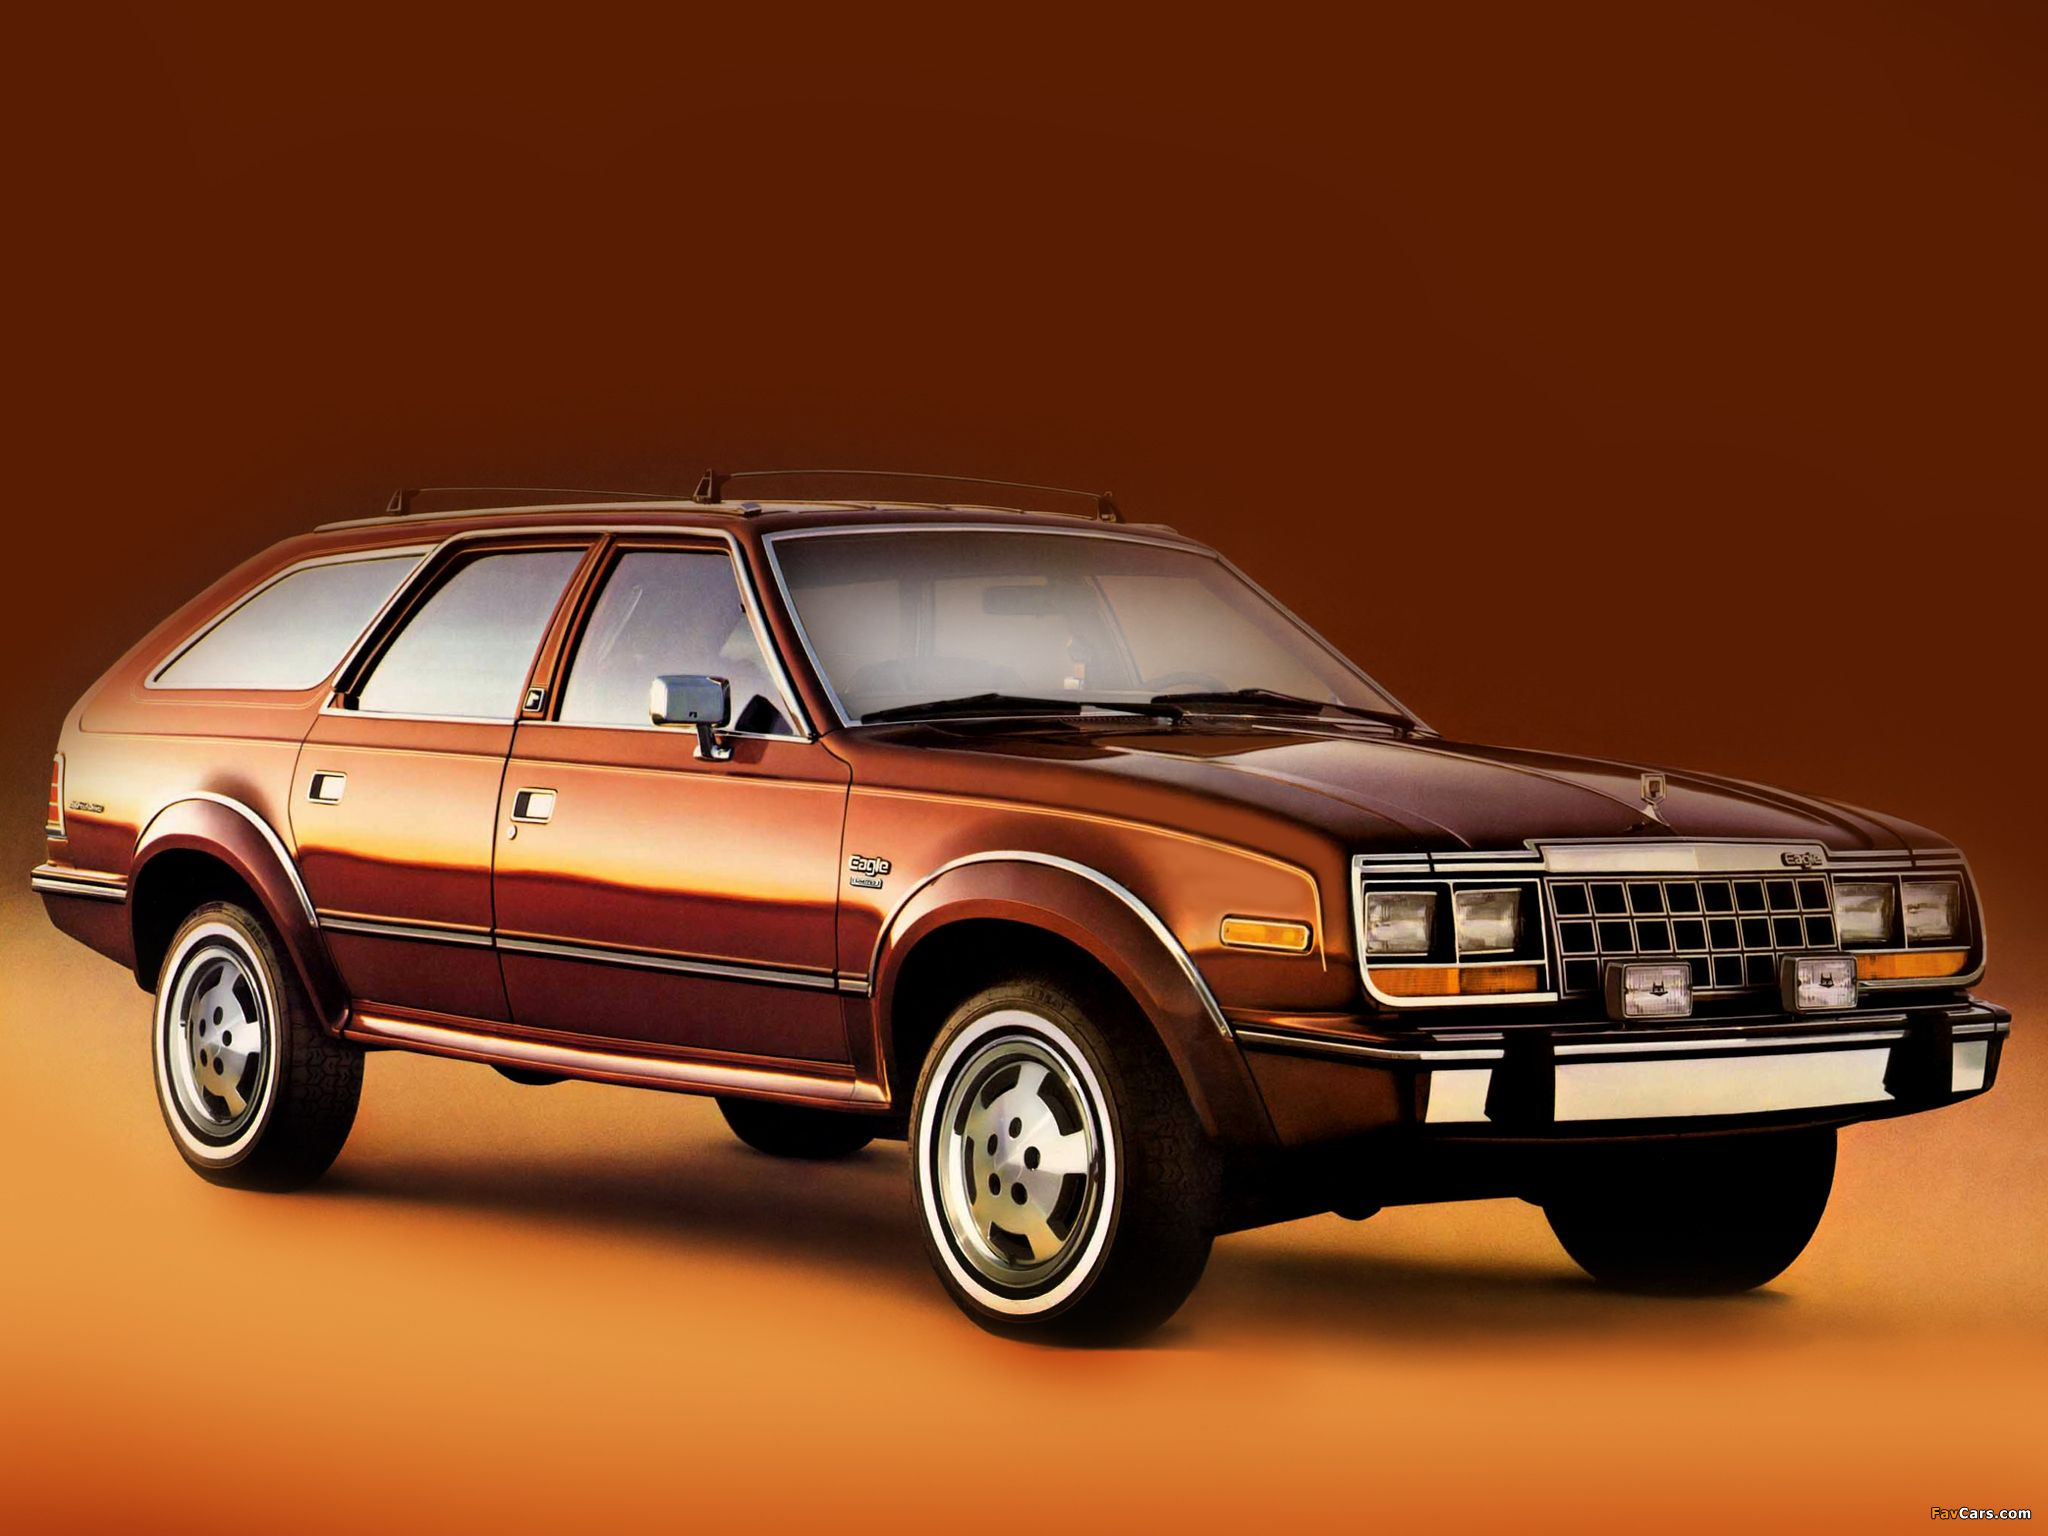 27 Of The Weirdest American Cars Ever Seen On The Road | Page 13 ...